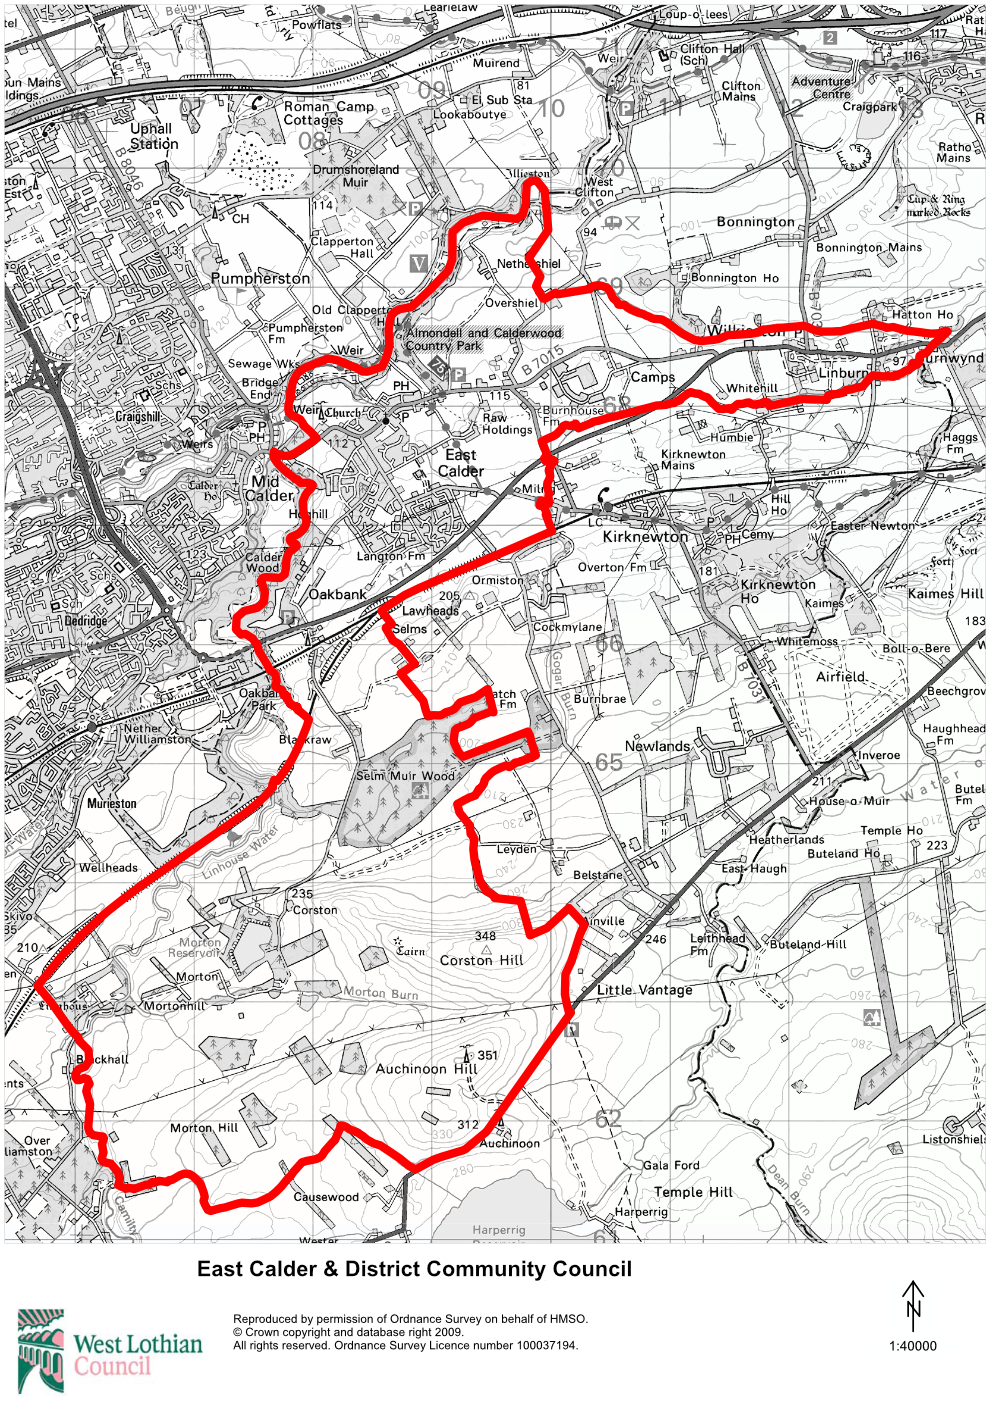 East Calder & District Community Council Area Map